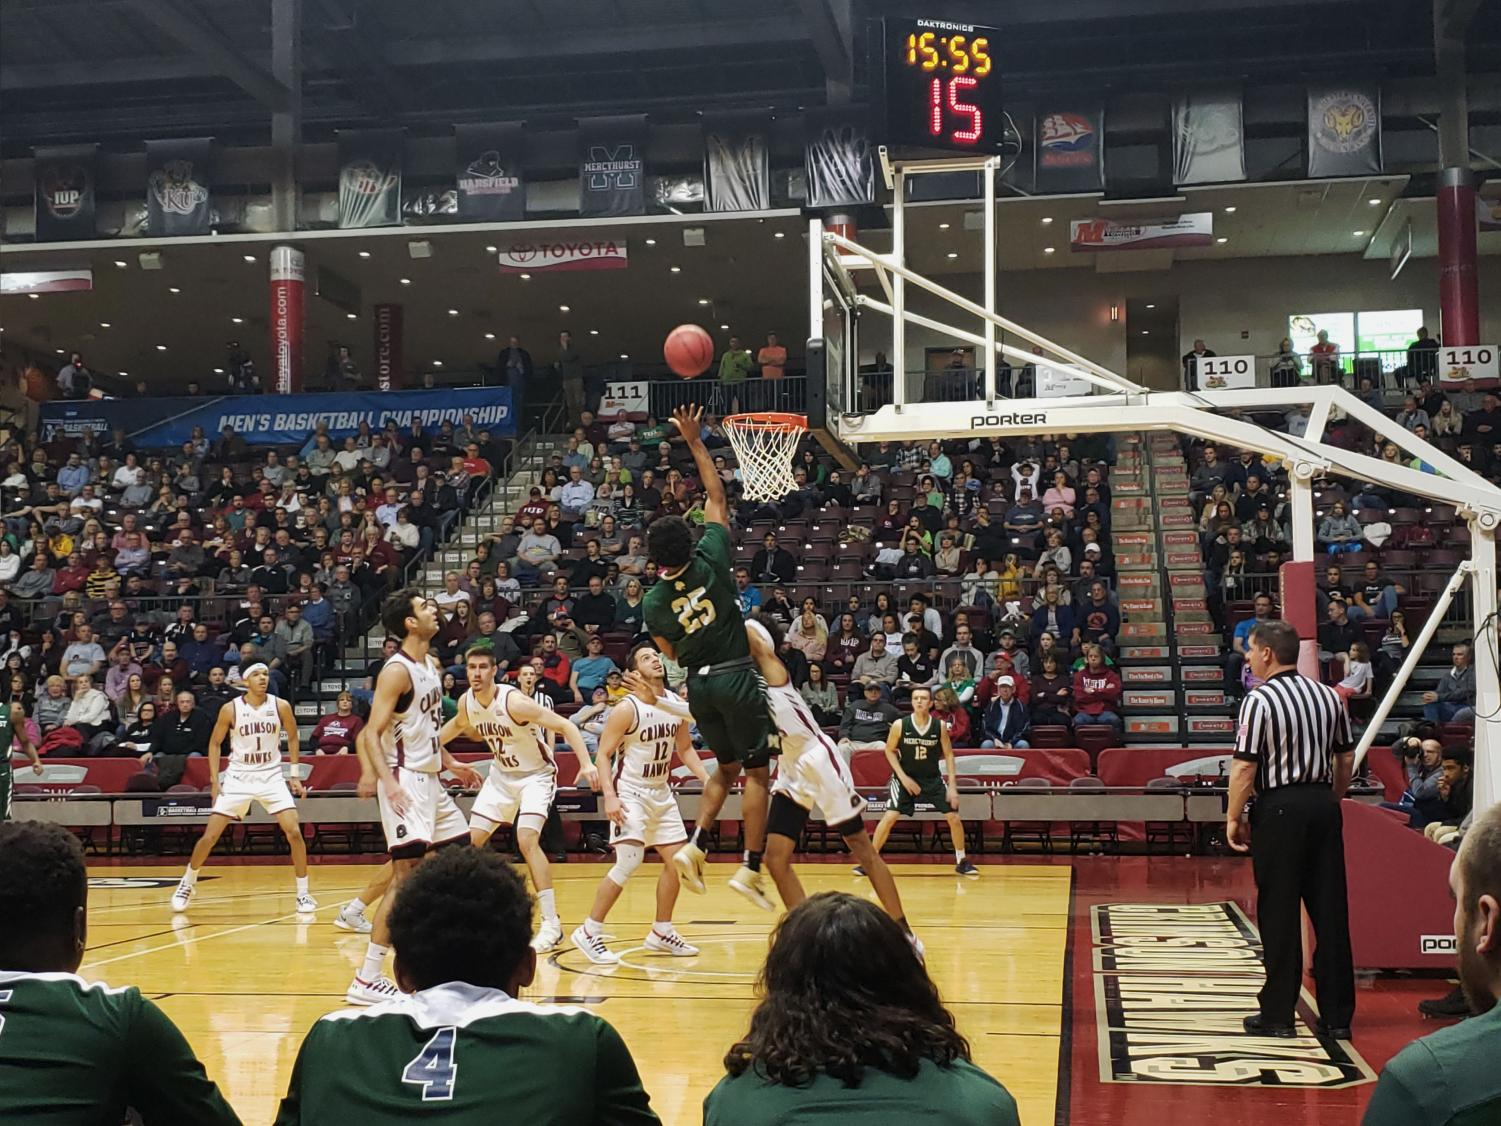 The Lakers' Jason Massey jumps for a shot against Indiana University of Pennsylvania on March 17.